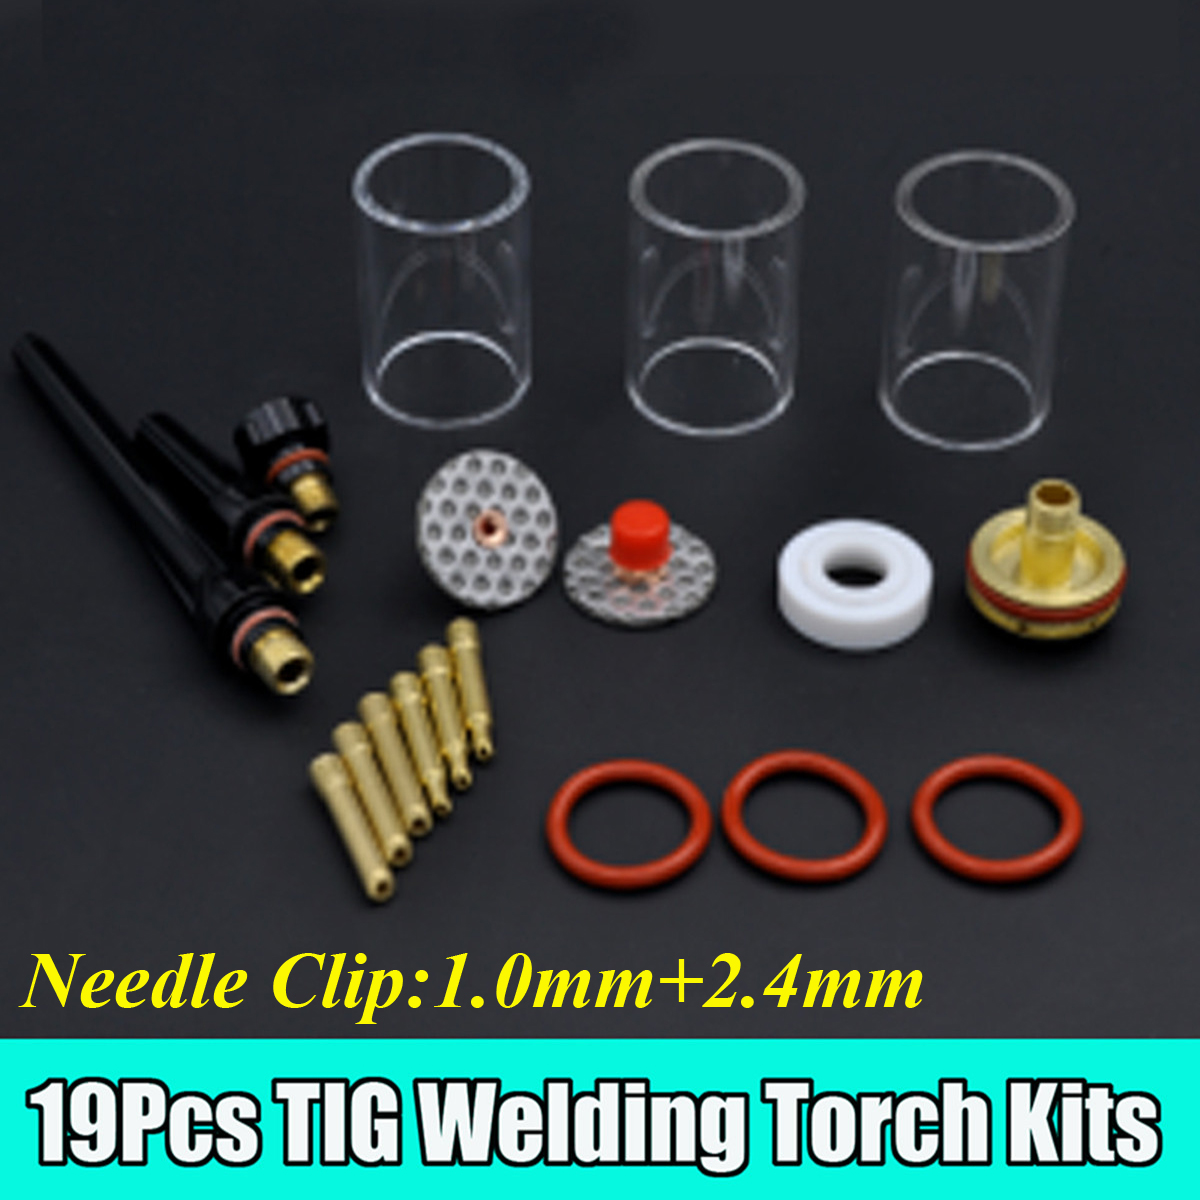 1.0mm+2.4mm 19PCs TIG Welding Torch Kit Tungsten Needle Clip Stubby Collet Body Gas Lens Pyrex Glass Cup for WP-17/18/26 Series 17pcs tig welding torch stubby collet gas lens glass nozzle pryex cup kit with heat resistant o rings for wp 17 18 26 series